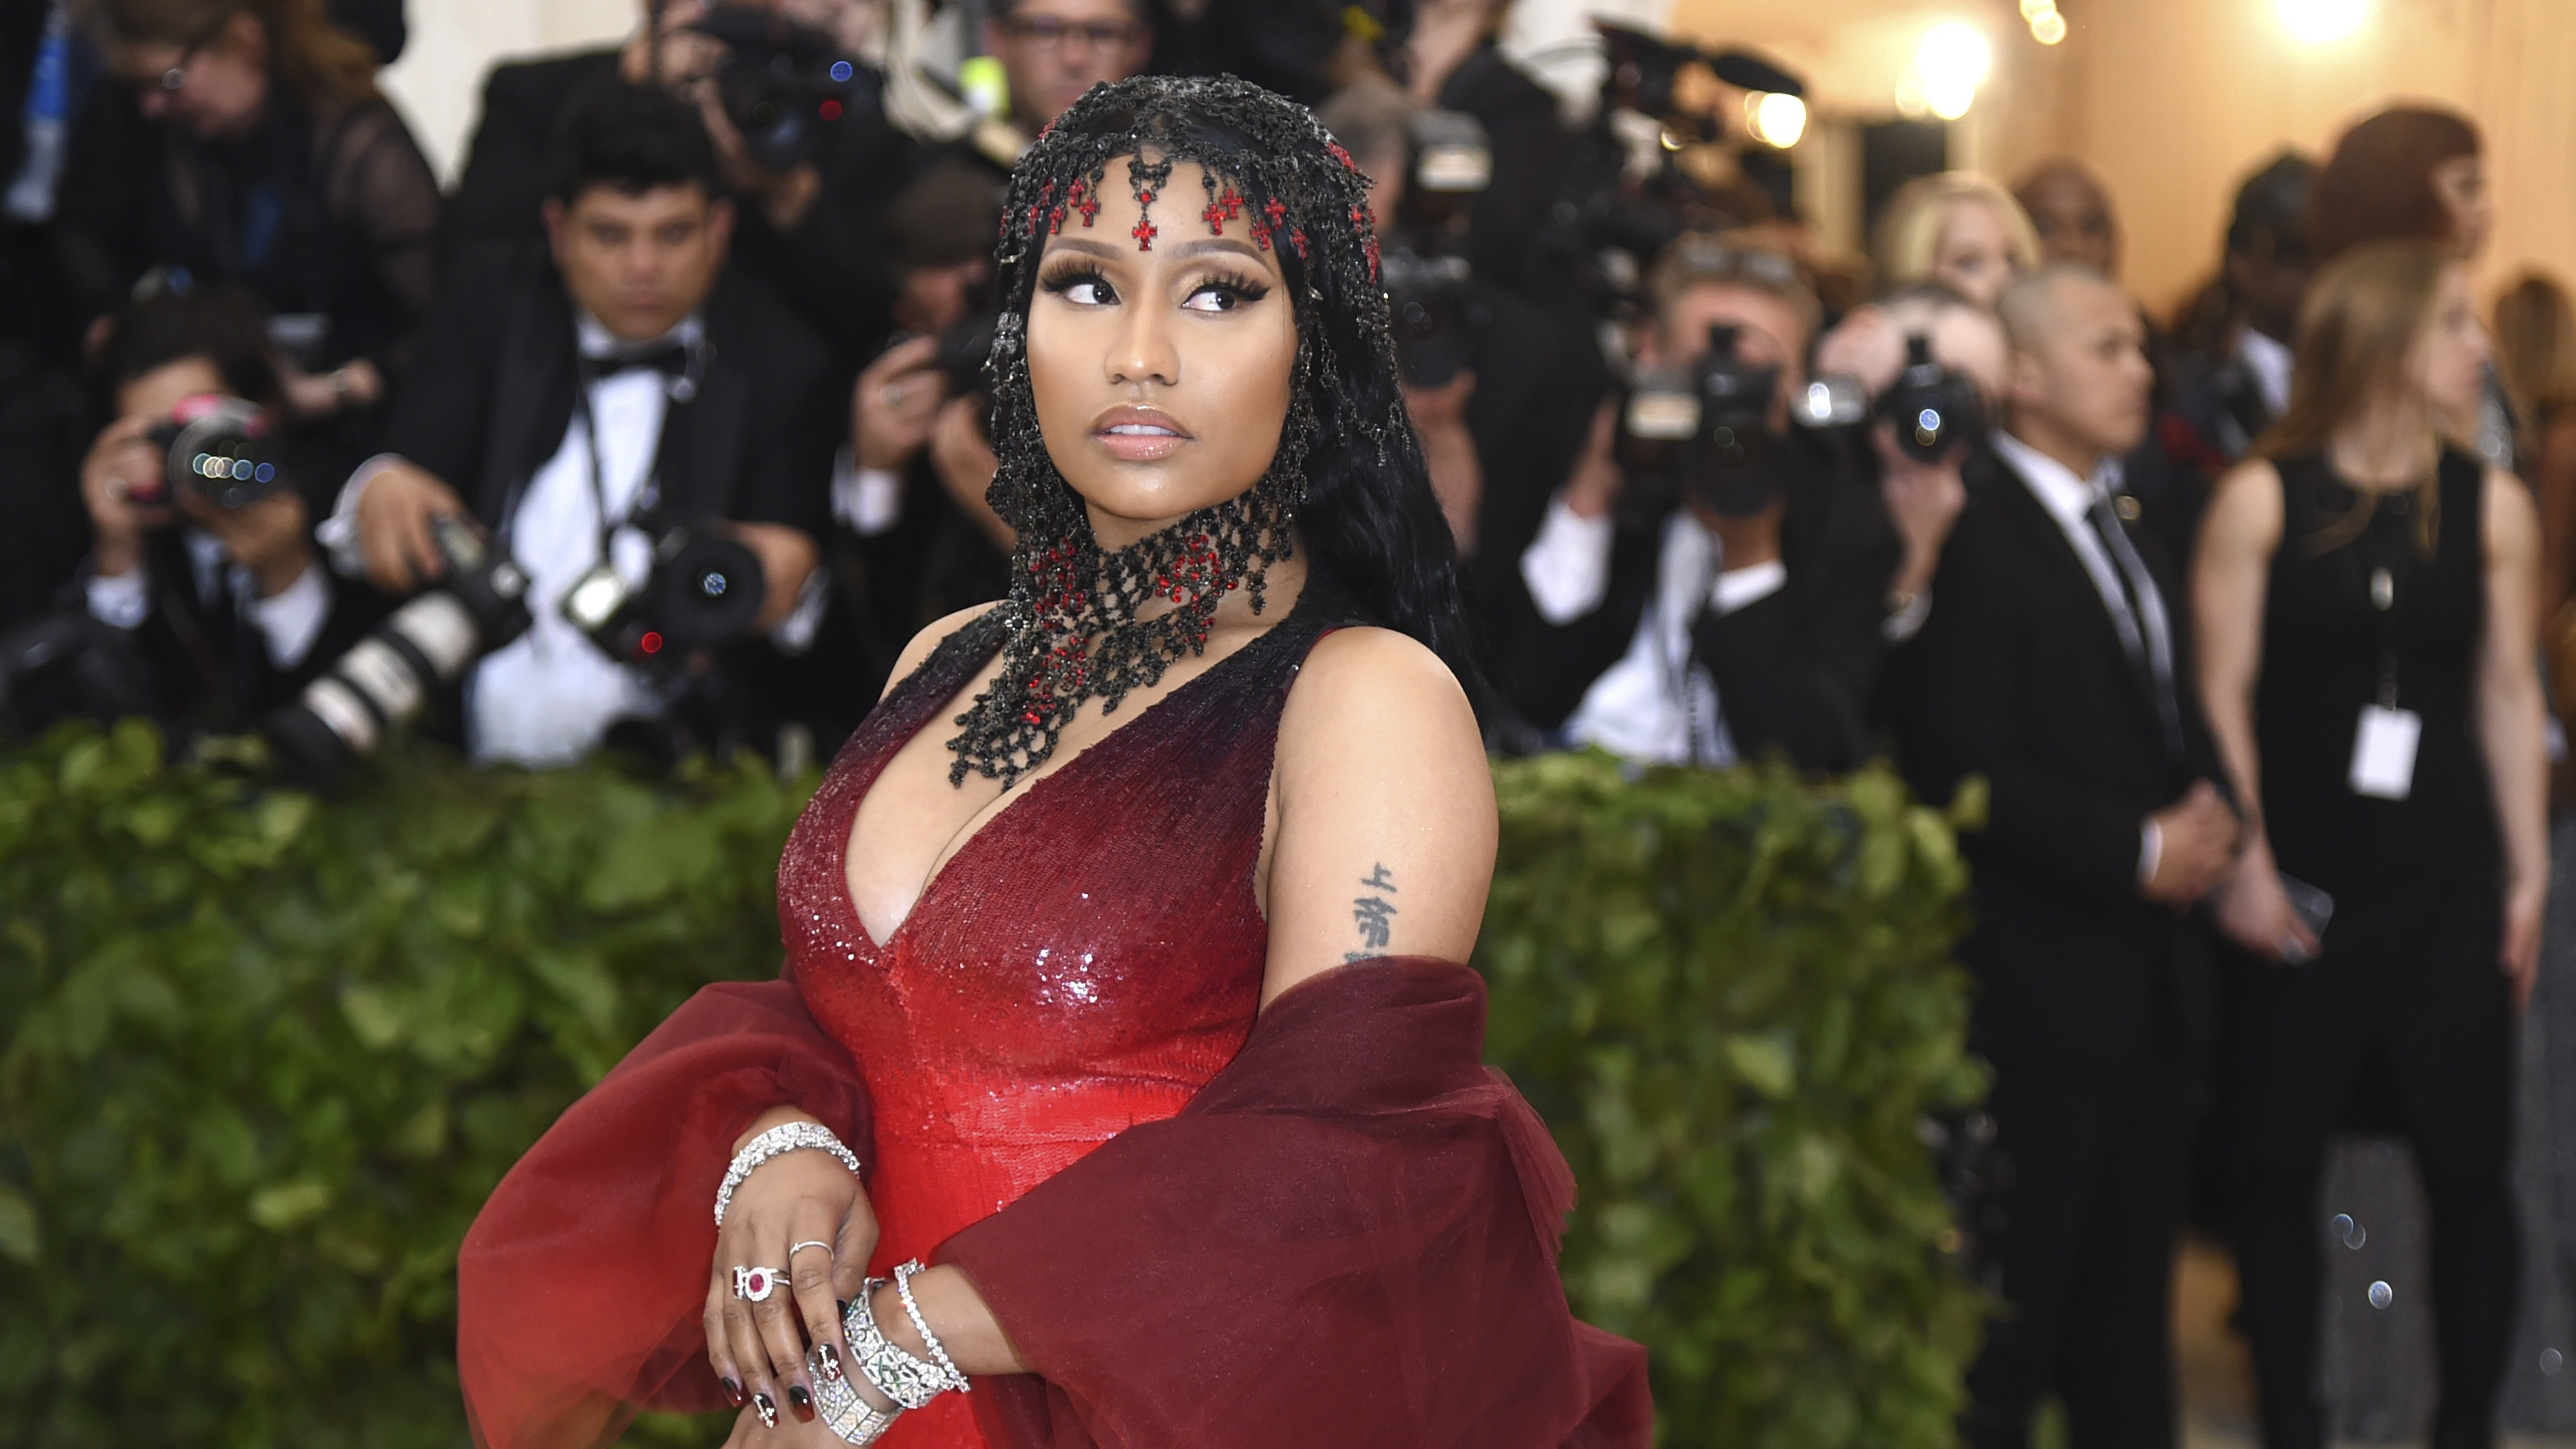 Nicki Minaj releases 'Barbie Tingz' and 'Chun-Li' music videos